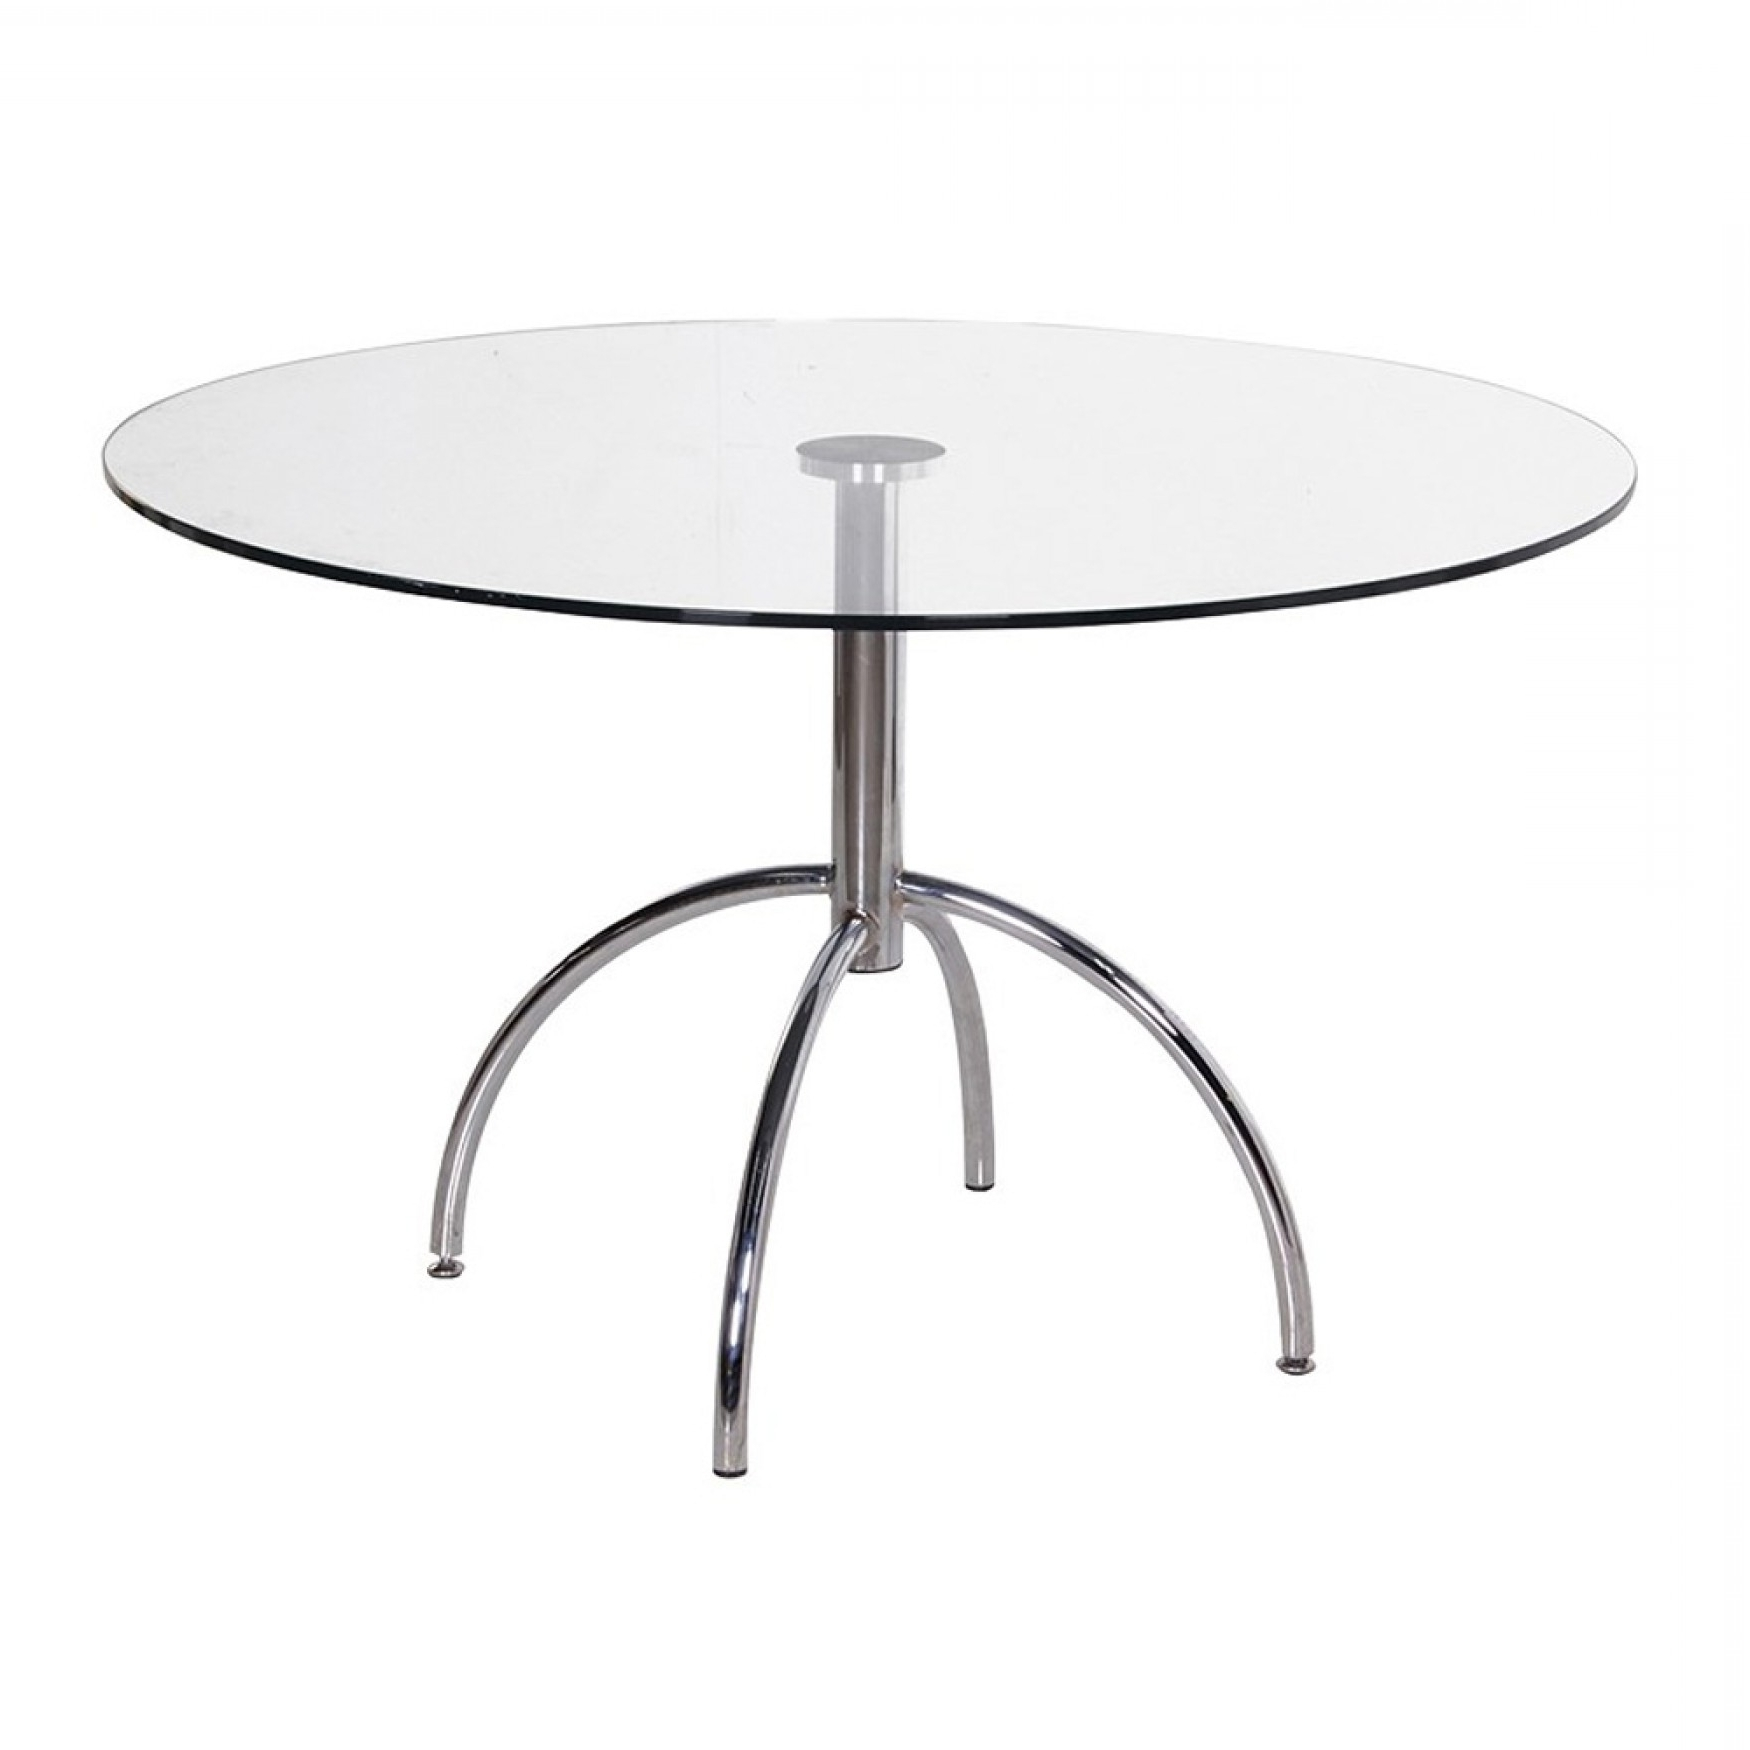 Chrome Glass Dining Tables Inside Famous Round Chrome/glass Dining Table (Gallery 25 of 25)